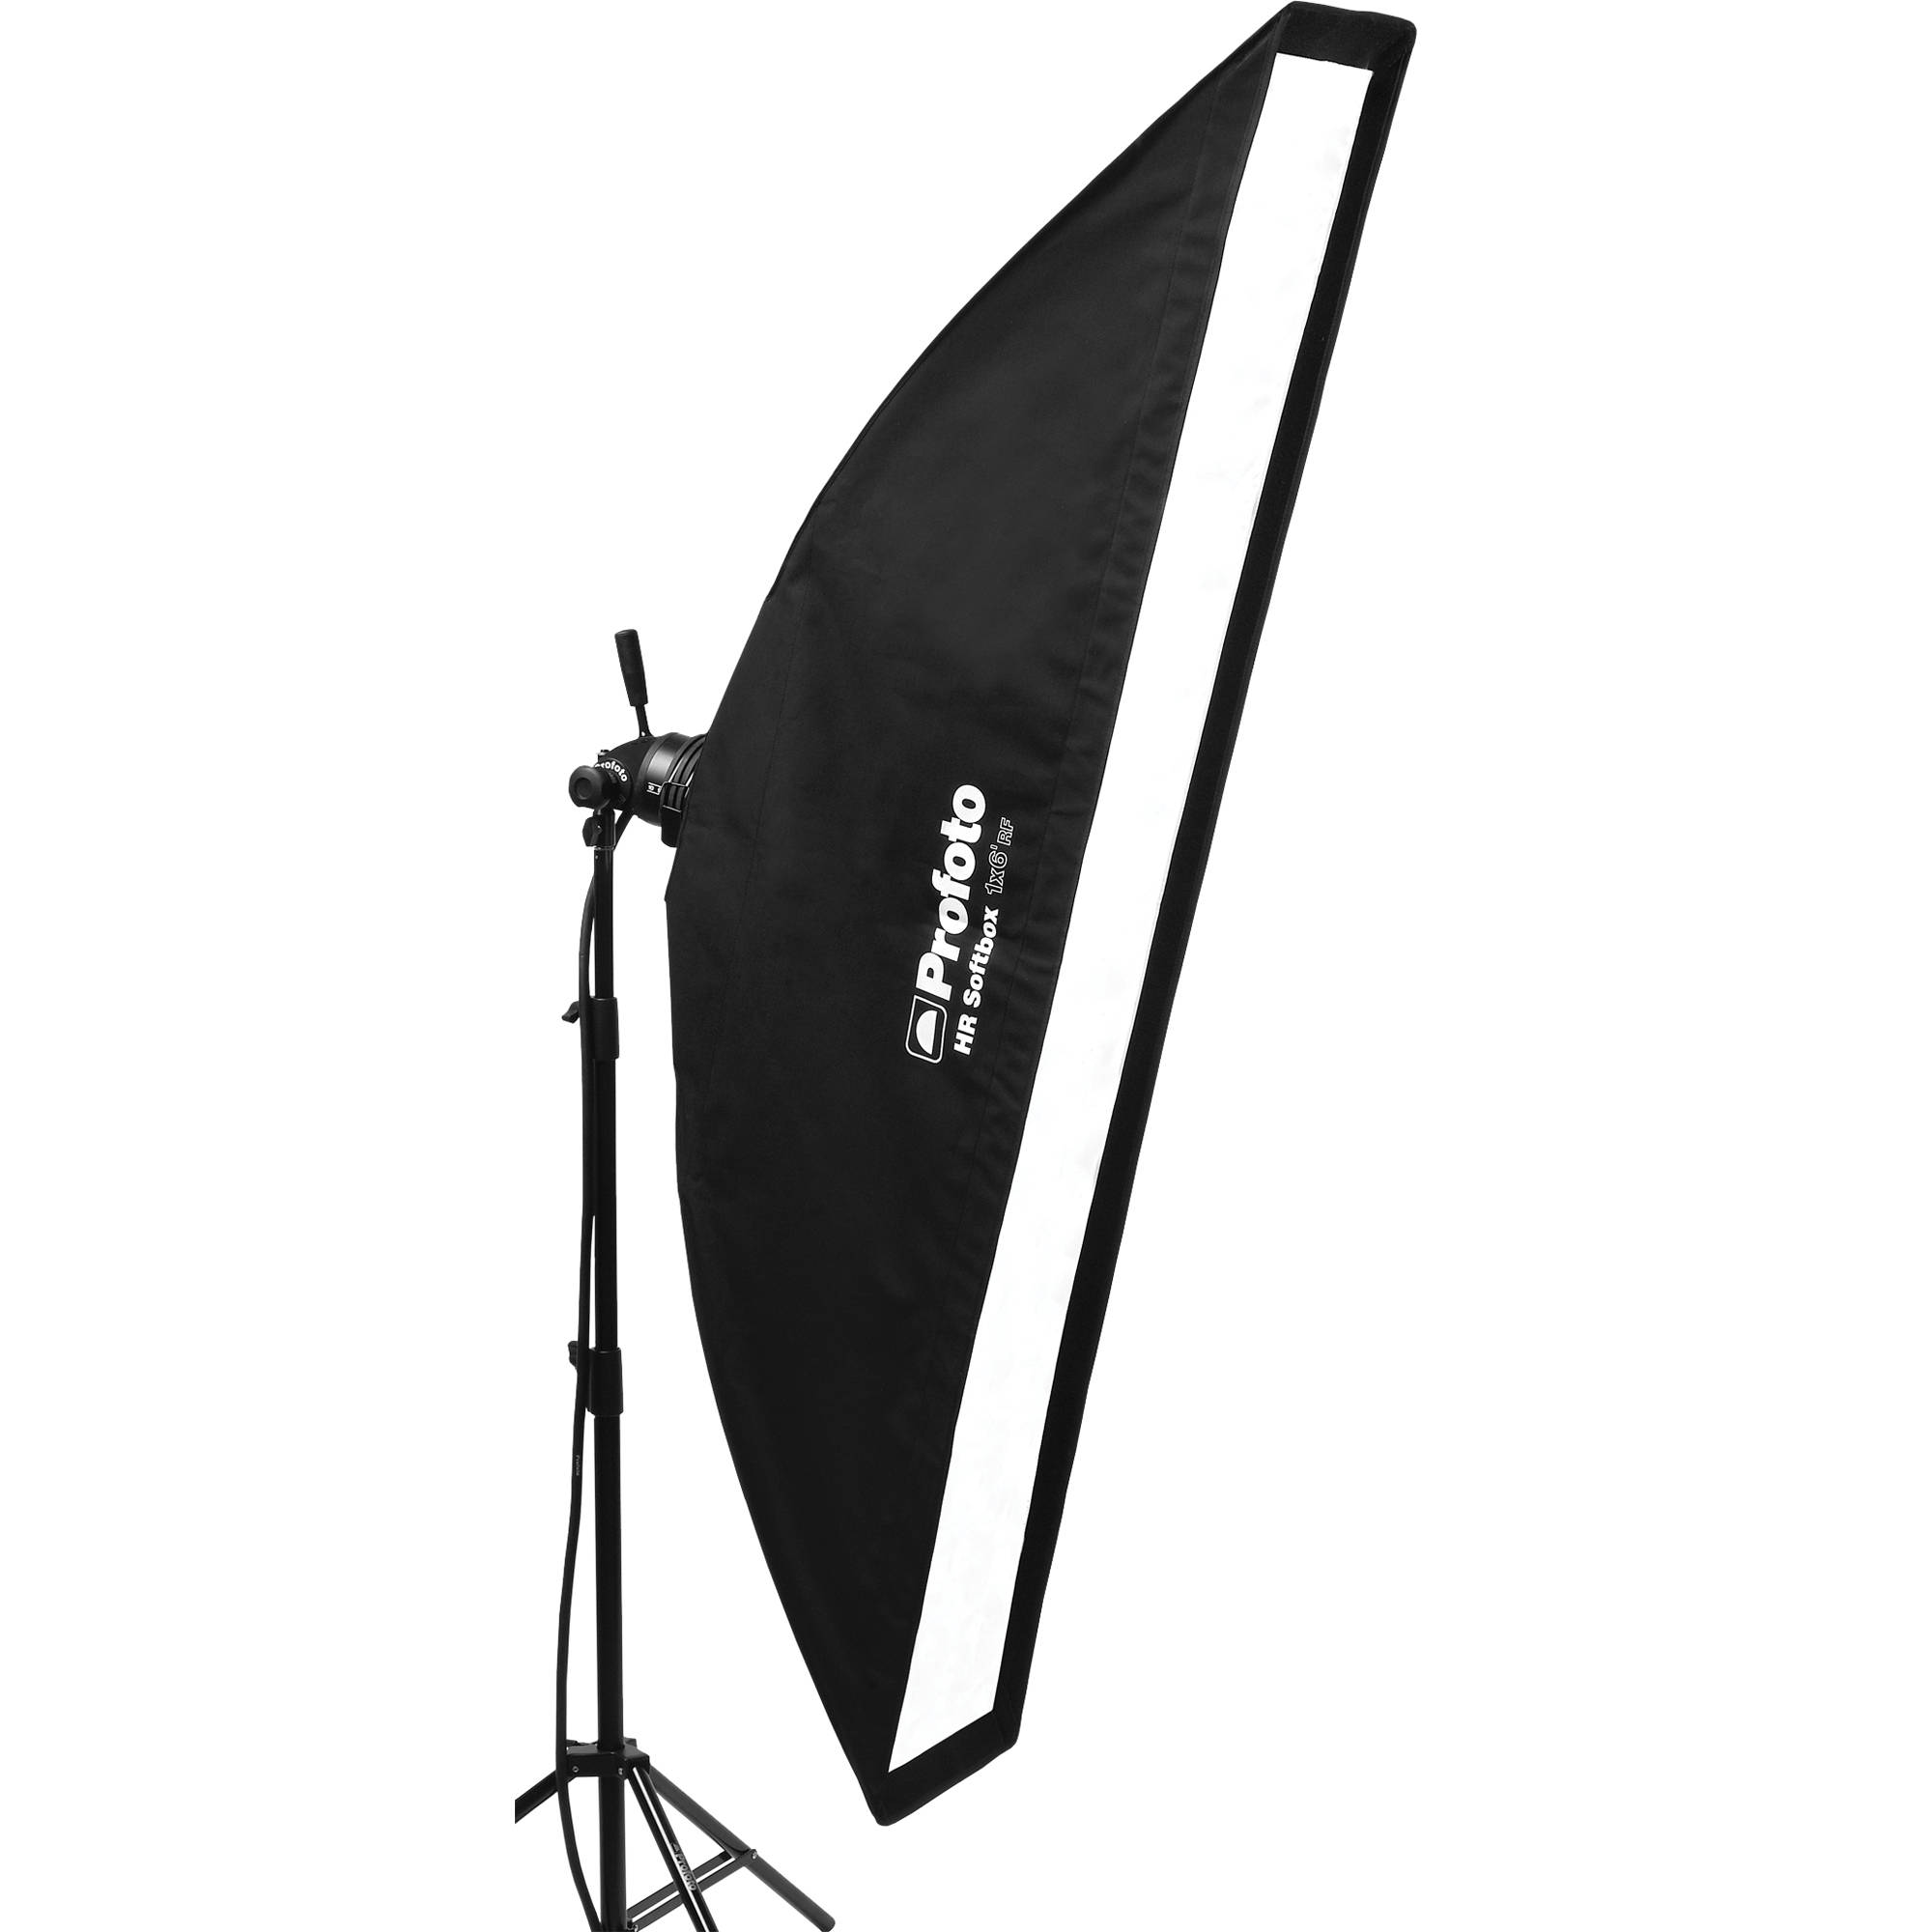 Profoto 1 x 6' HR Softbox 100497 B&H Photo Video